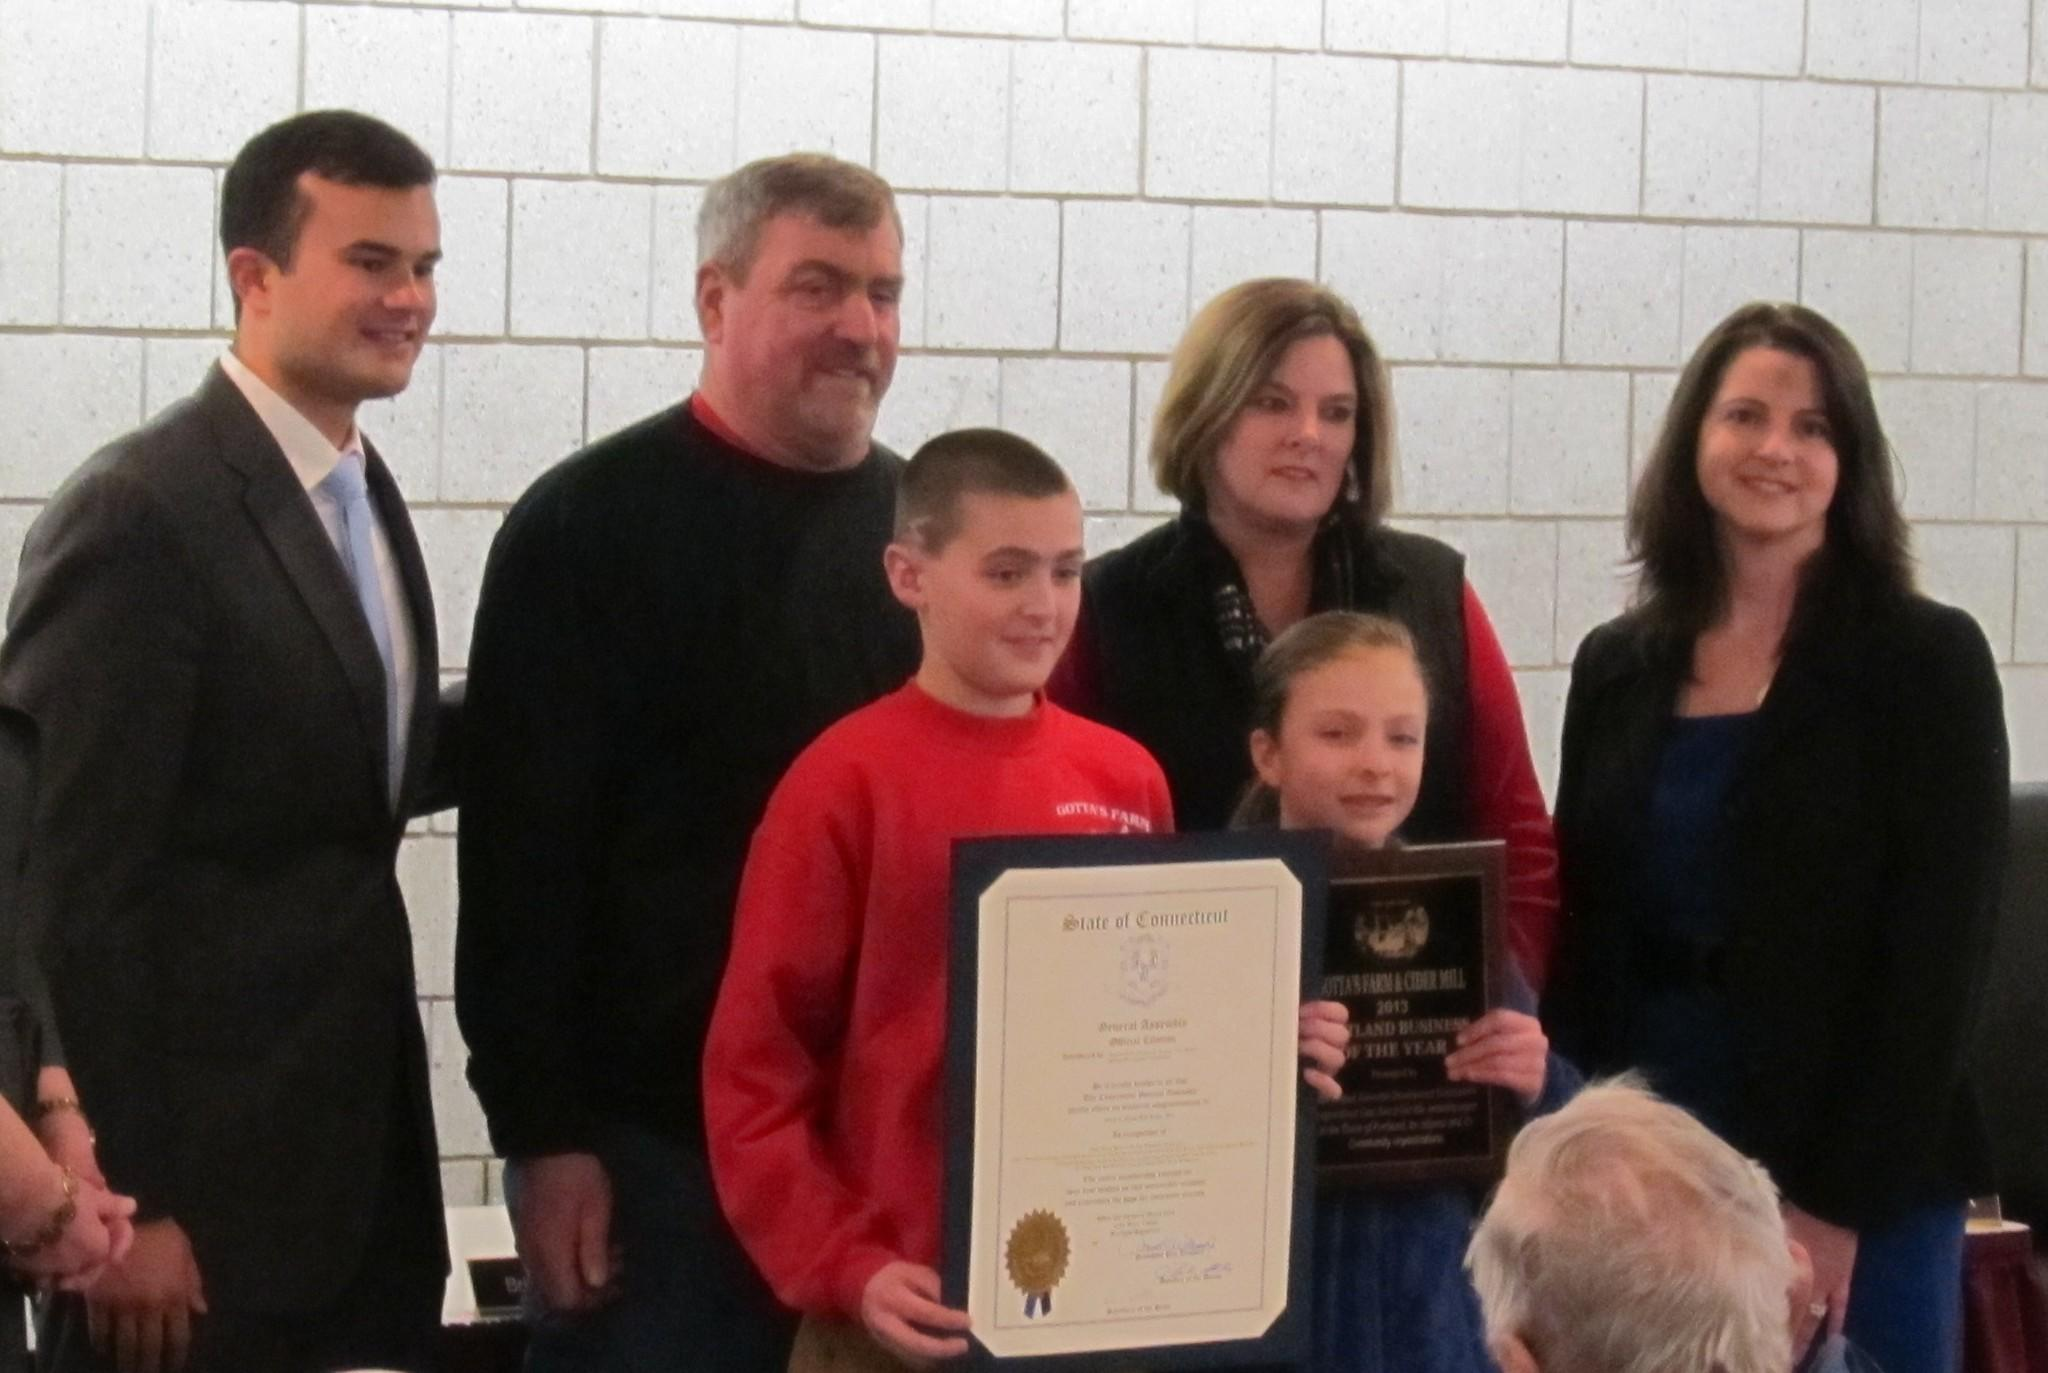 State Senator Art Linares, Richard Gotta, Jackie Gotta, and State Representative Christie Carpino pose with the next generation RJ and Elizabeth Gotta, holding the Economic Development Commission Award and a citation of the Connecticut Legislature.